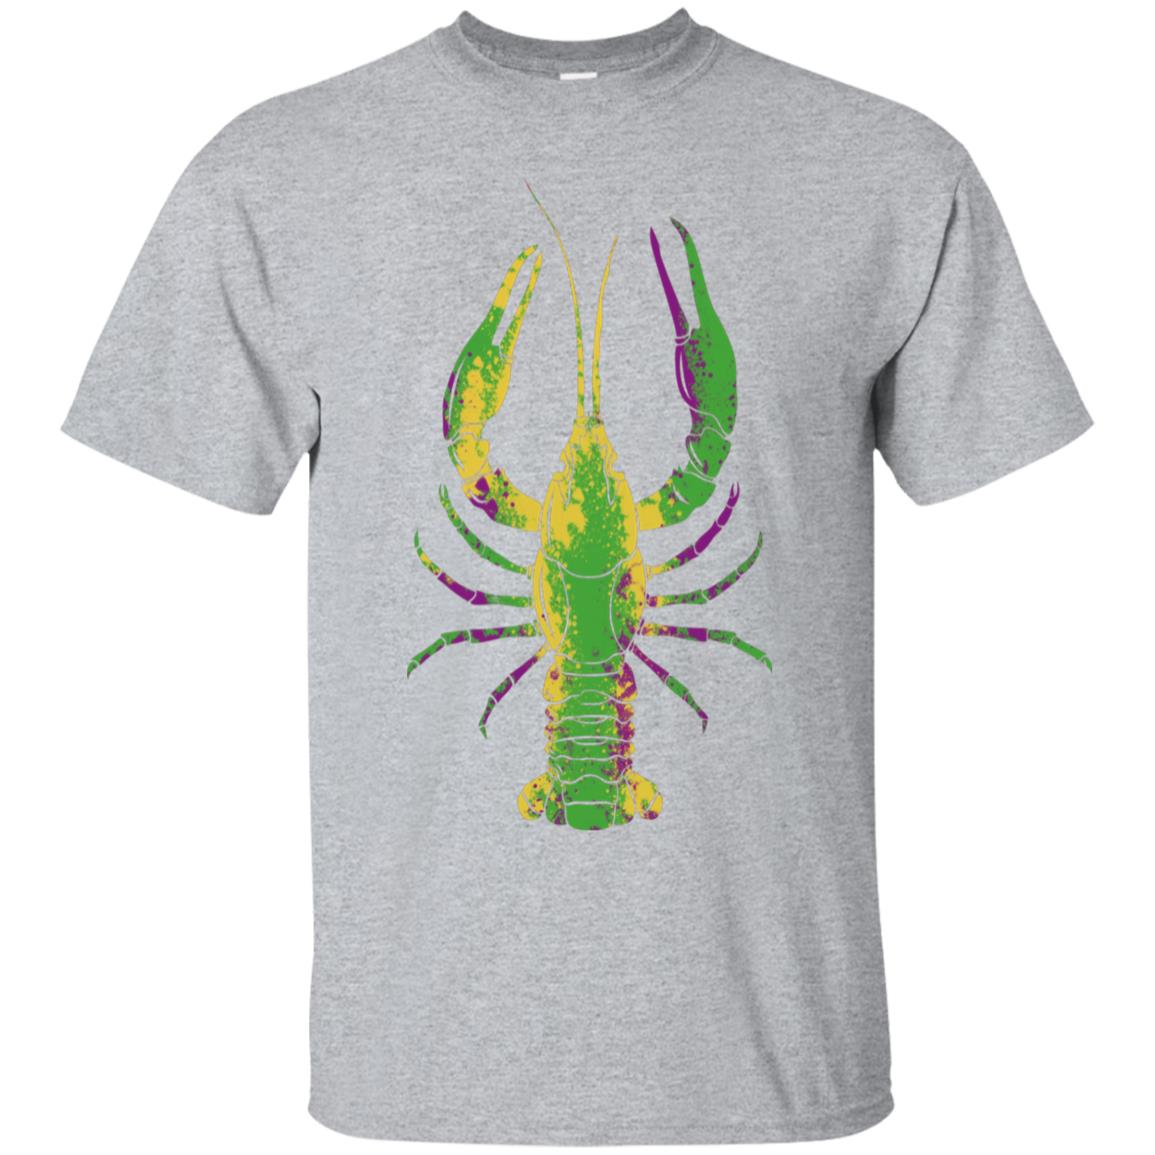 Mardi Gras Crawfish Shirt 99promocode